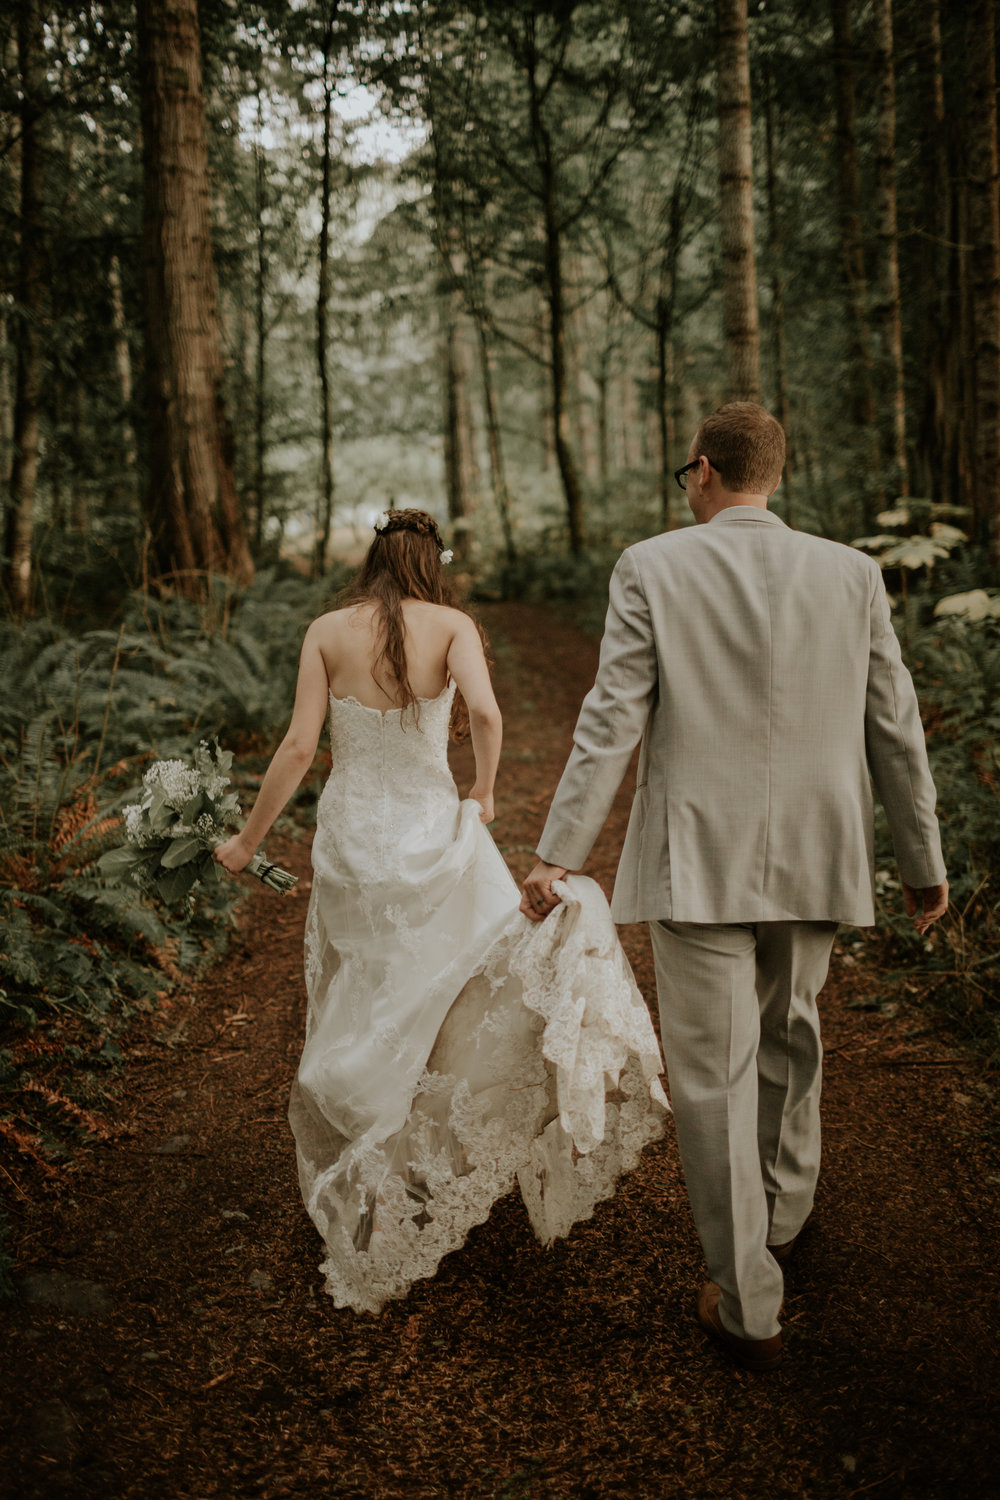 Port-Angeles-elopement-wedding-pnw-olympic-peninsula-photographer-portrait-kayladawnphoto-kayla-dawn-photography-olympic-national-park-201.jpg